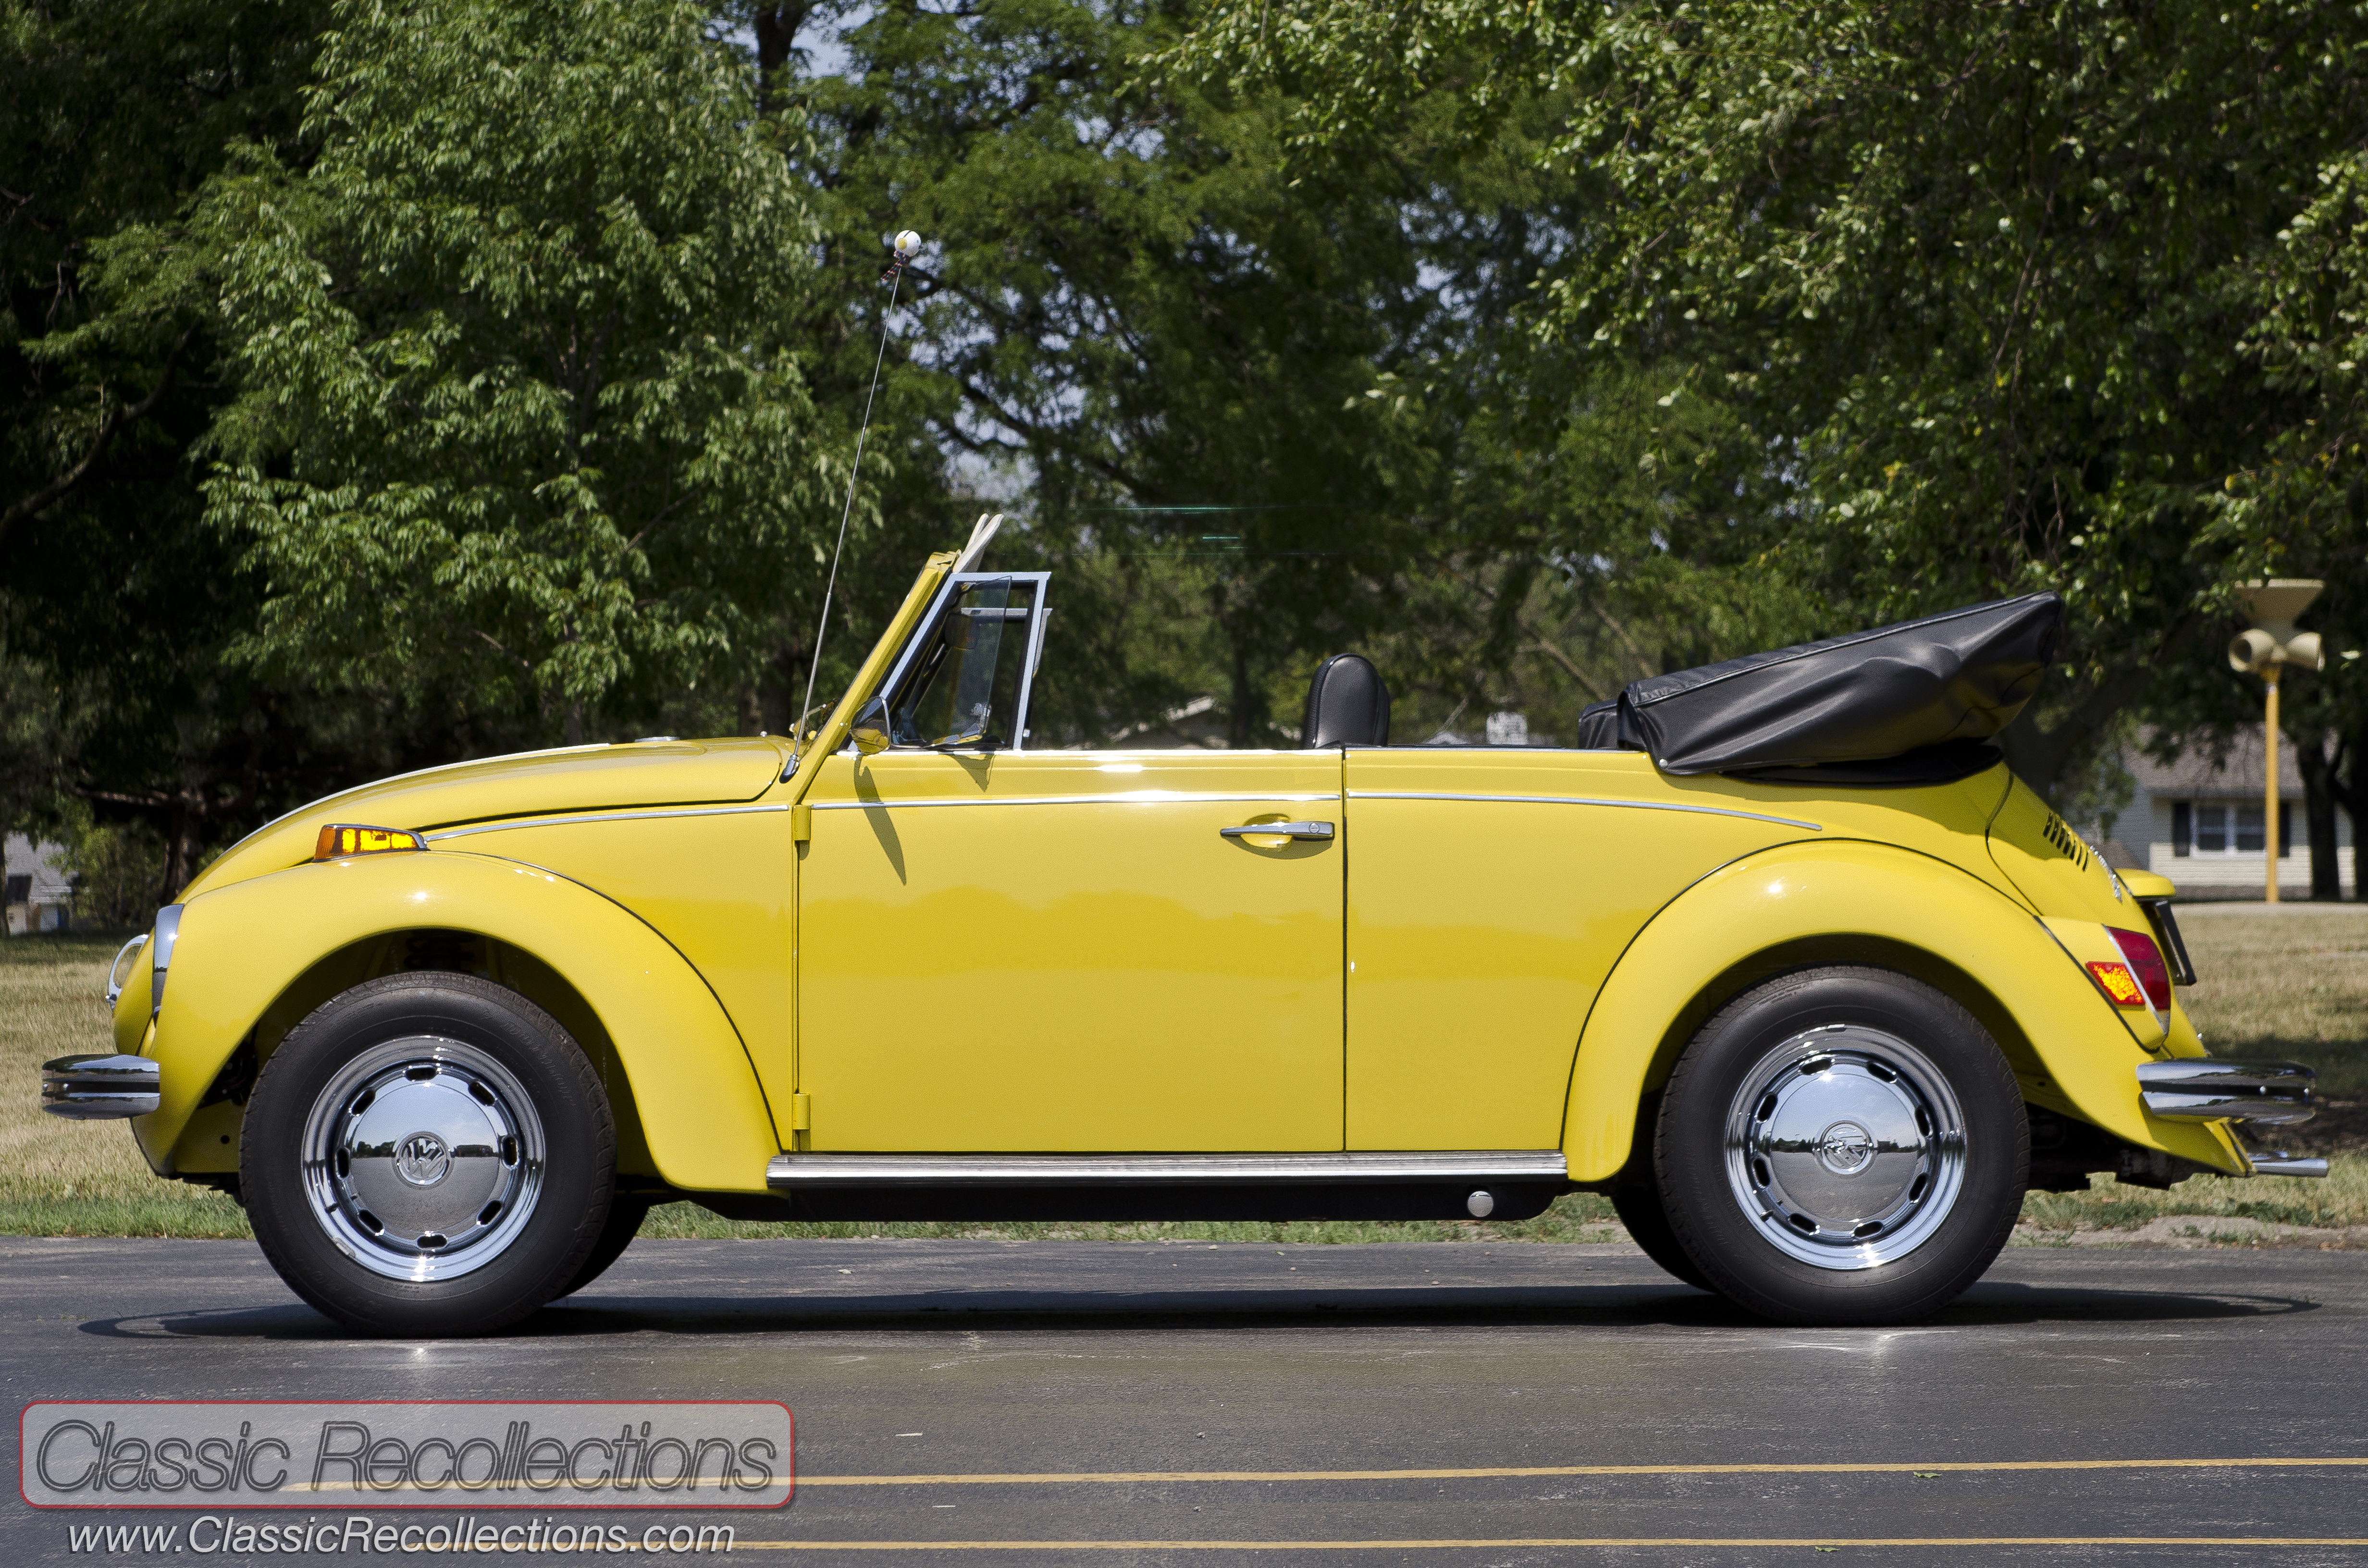 FEATURE 1971 VW Super Beetle – Classic Recollections